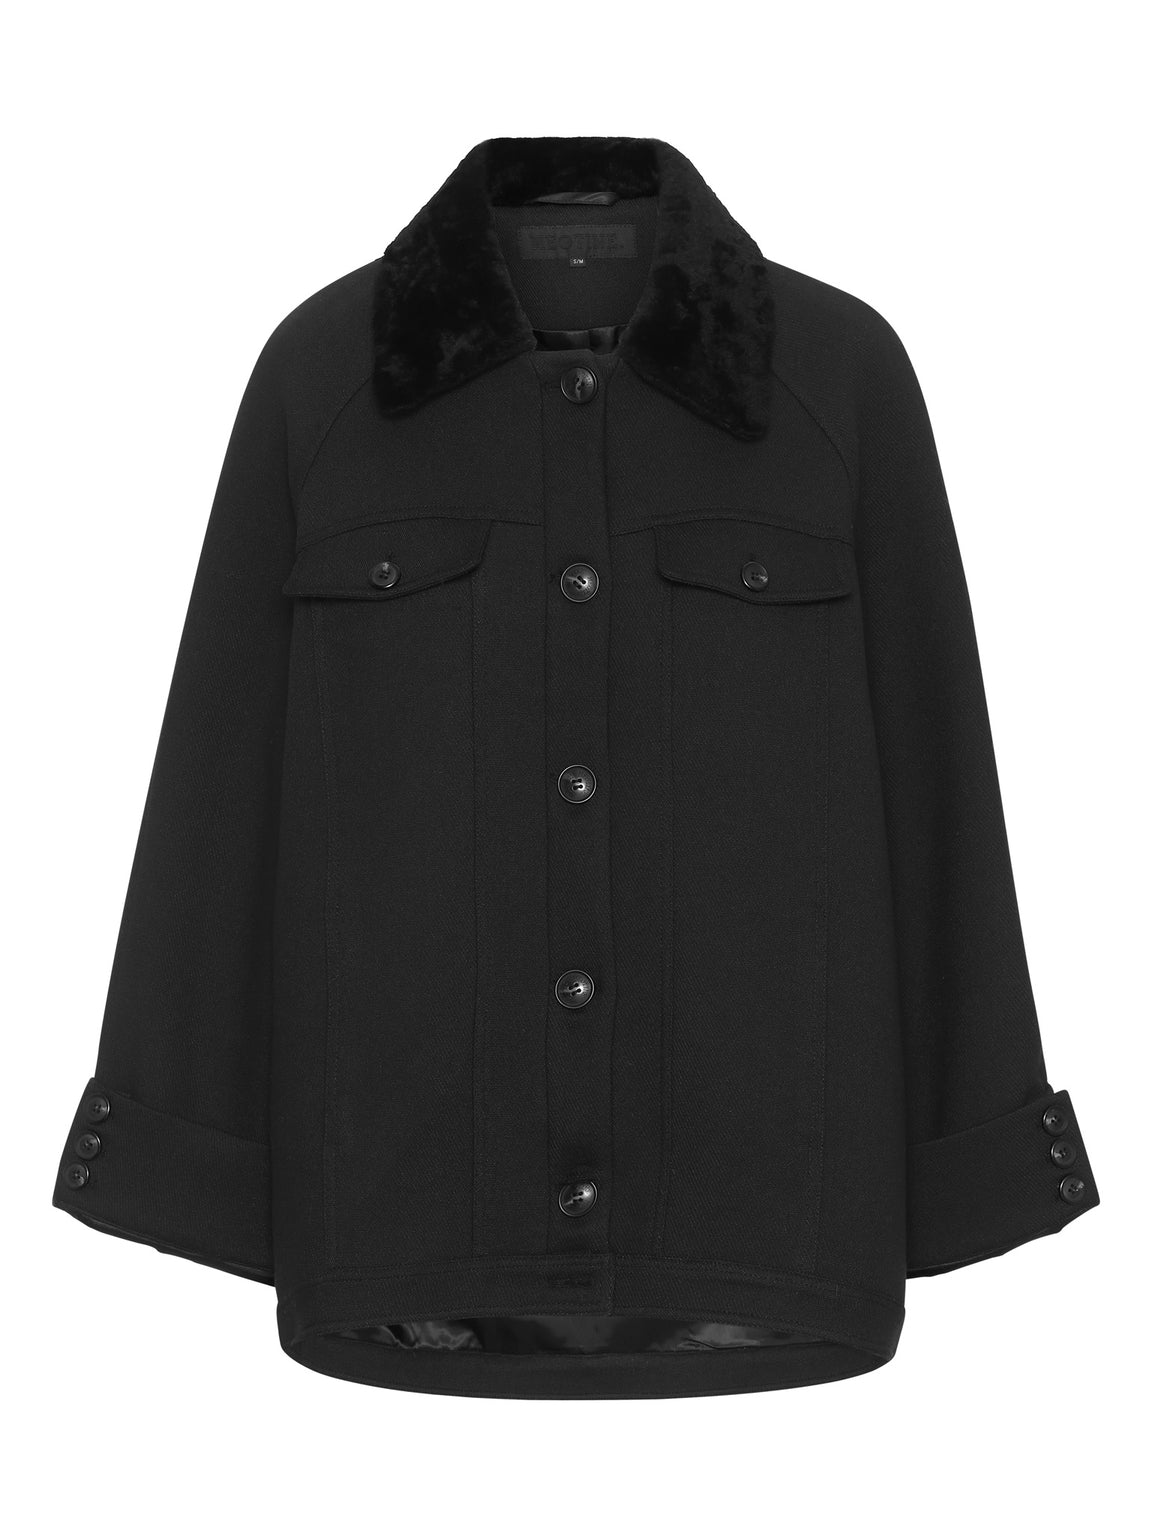 JACKIE JACKET - BLACK